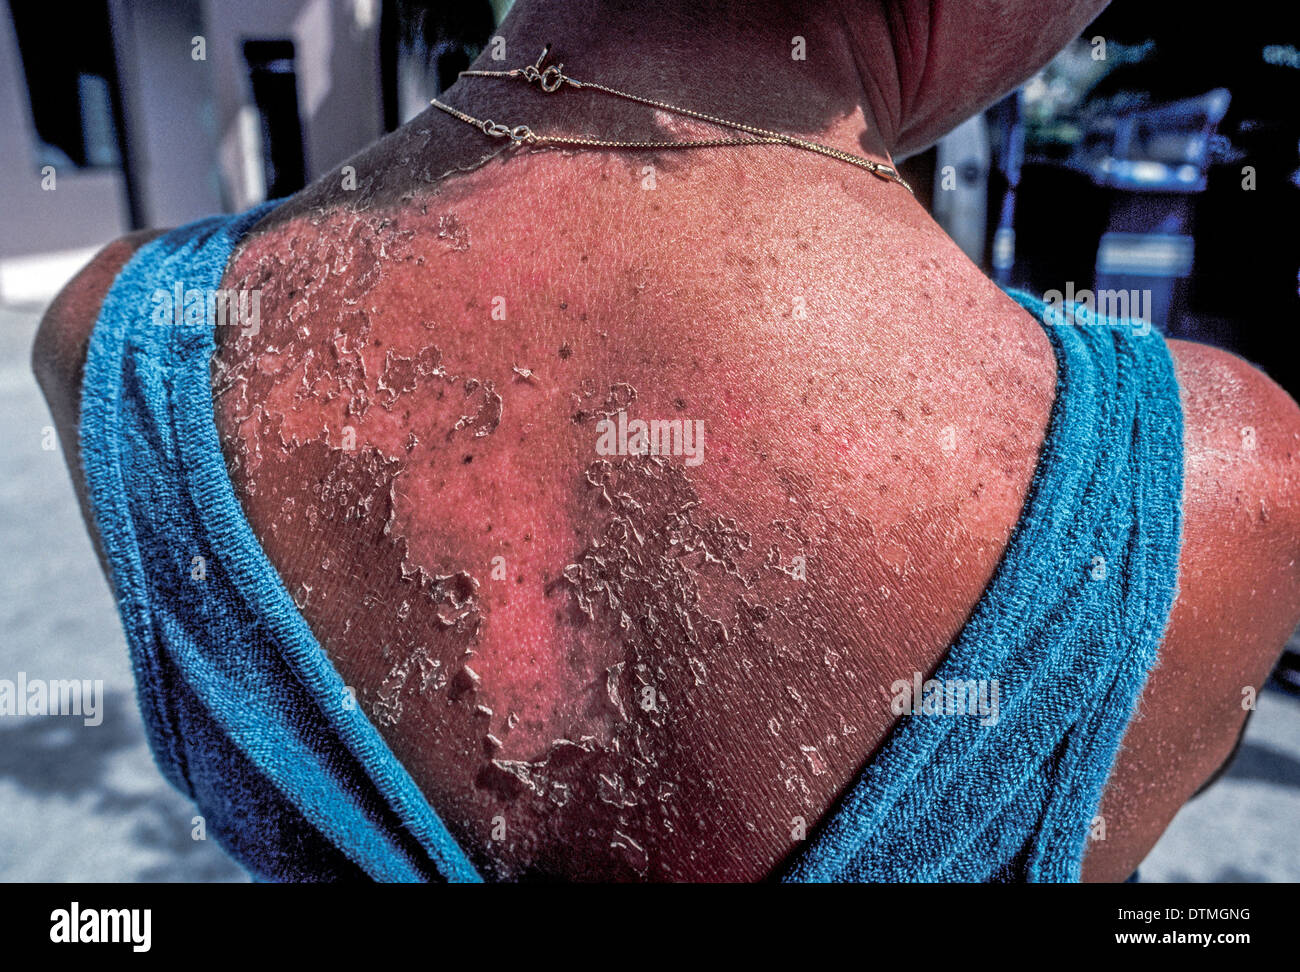 Human skin that has been damaged by sunburn peels off the back of a female Caucasian sunbather and leaves her exposed to further harmful sunlight. - Stock Image